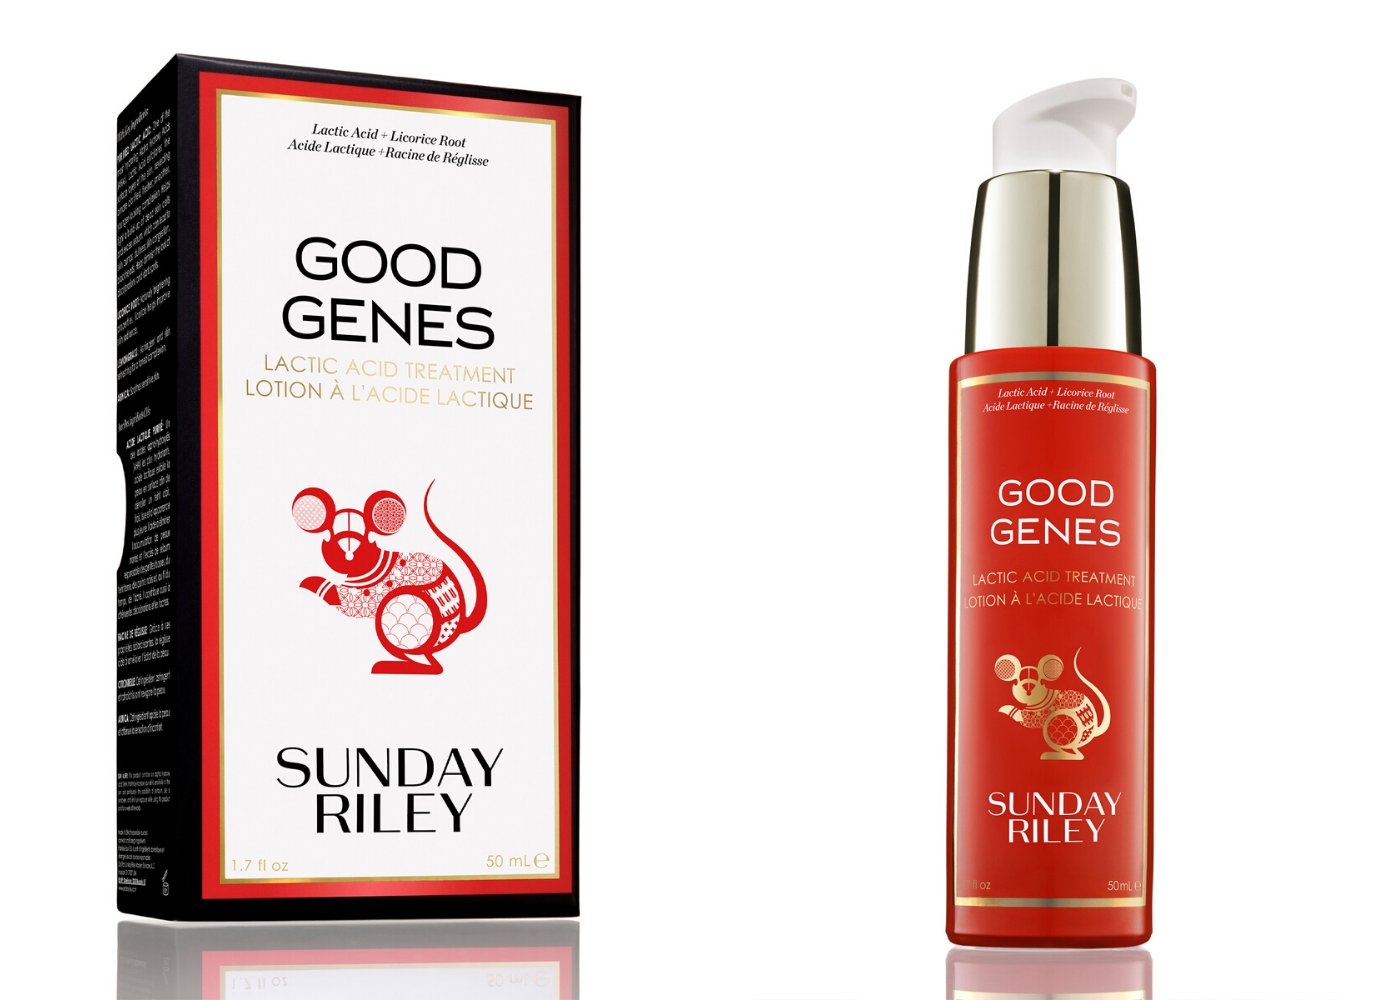 Sunday Riley Good Genes All-In-One Lactic Acid Treatment Lunar New Year